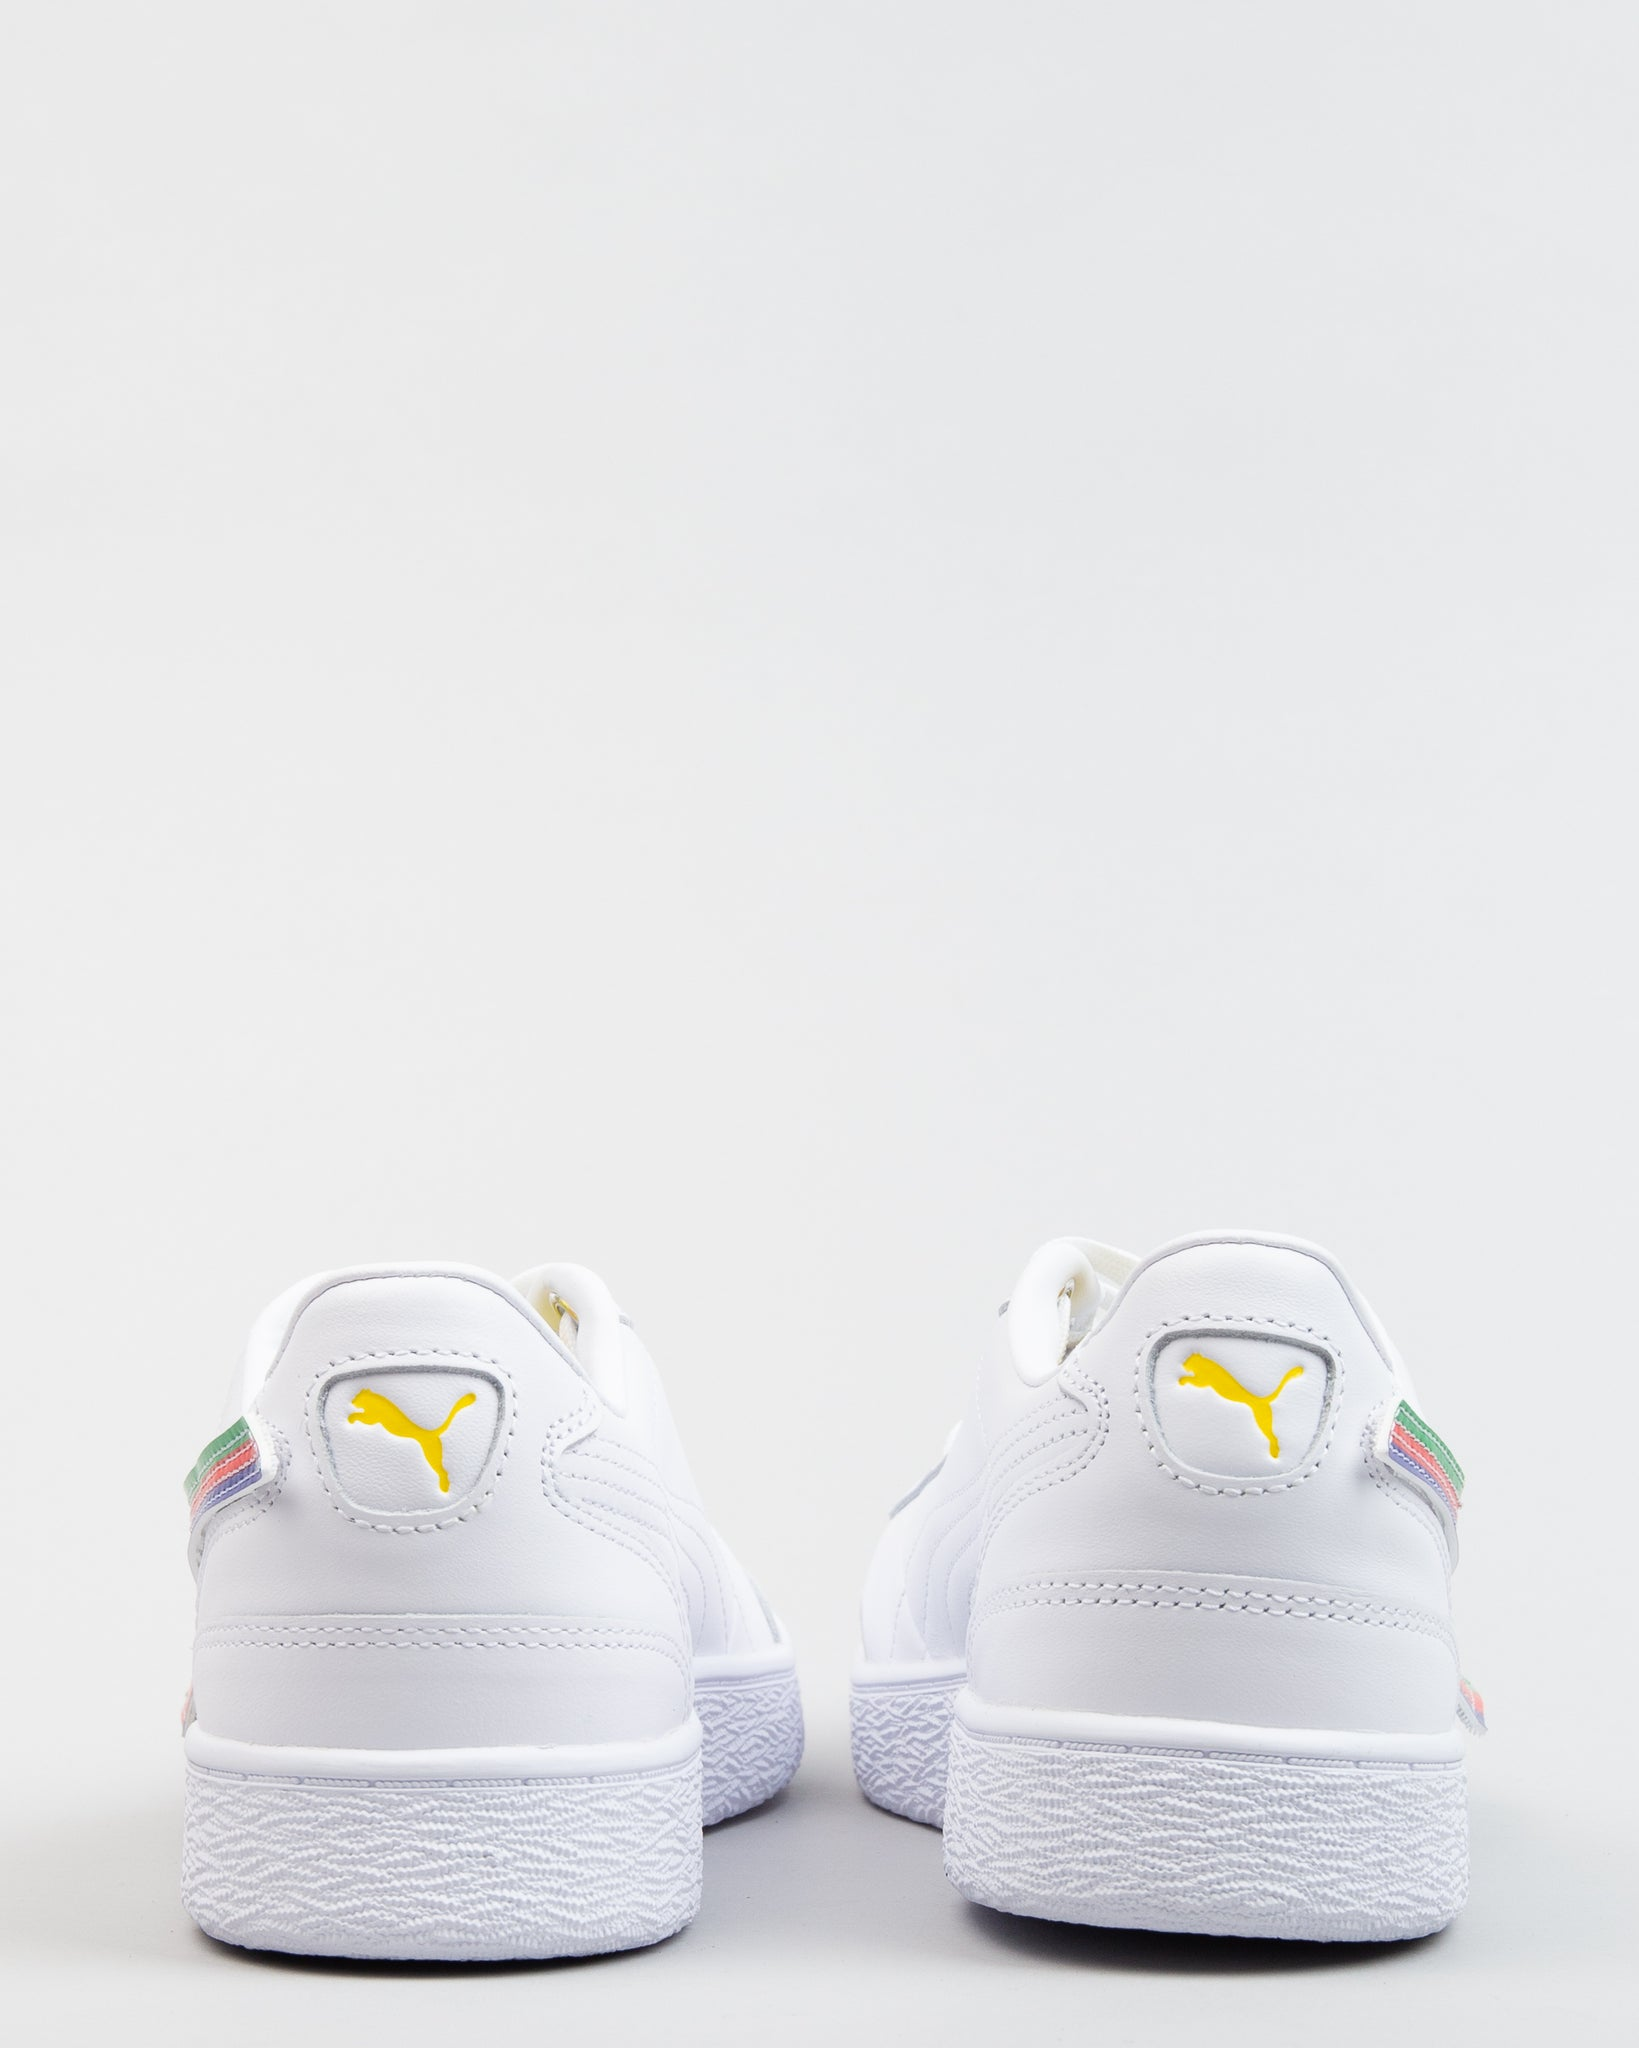 Chinatown Market Ralph Sampson Low White